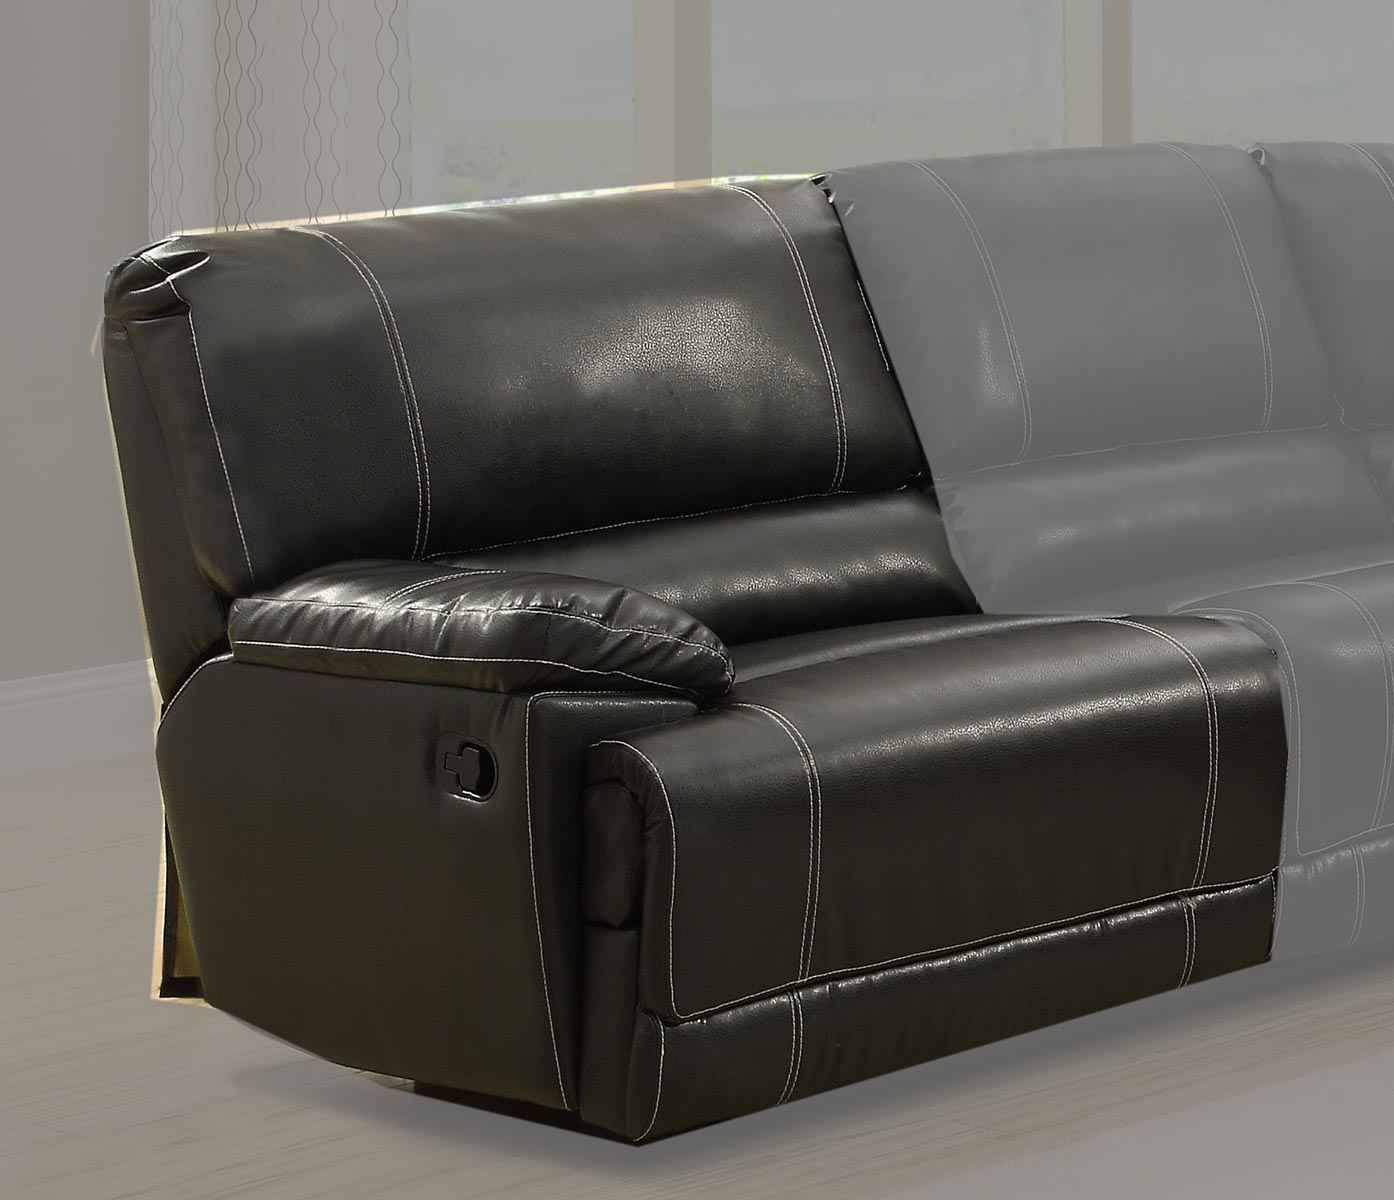 Homelegance Cale LSF Recliner Love Seat - Black - Bonded Leather Match